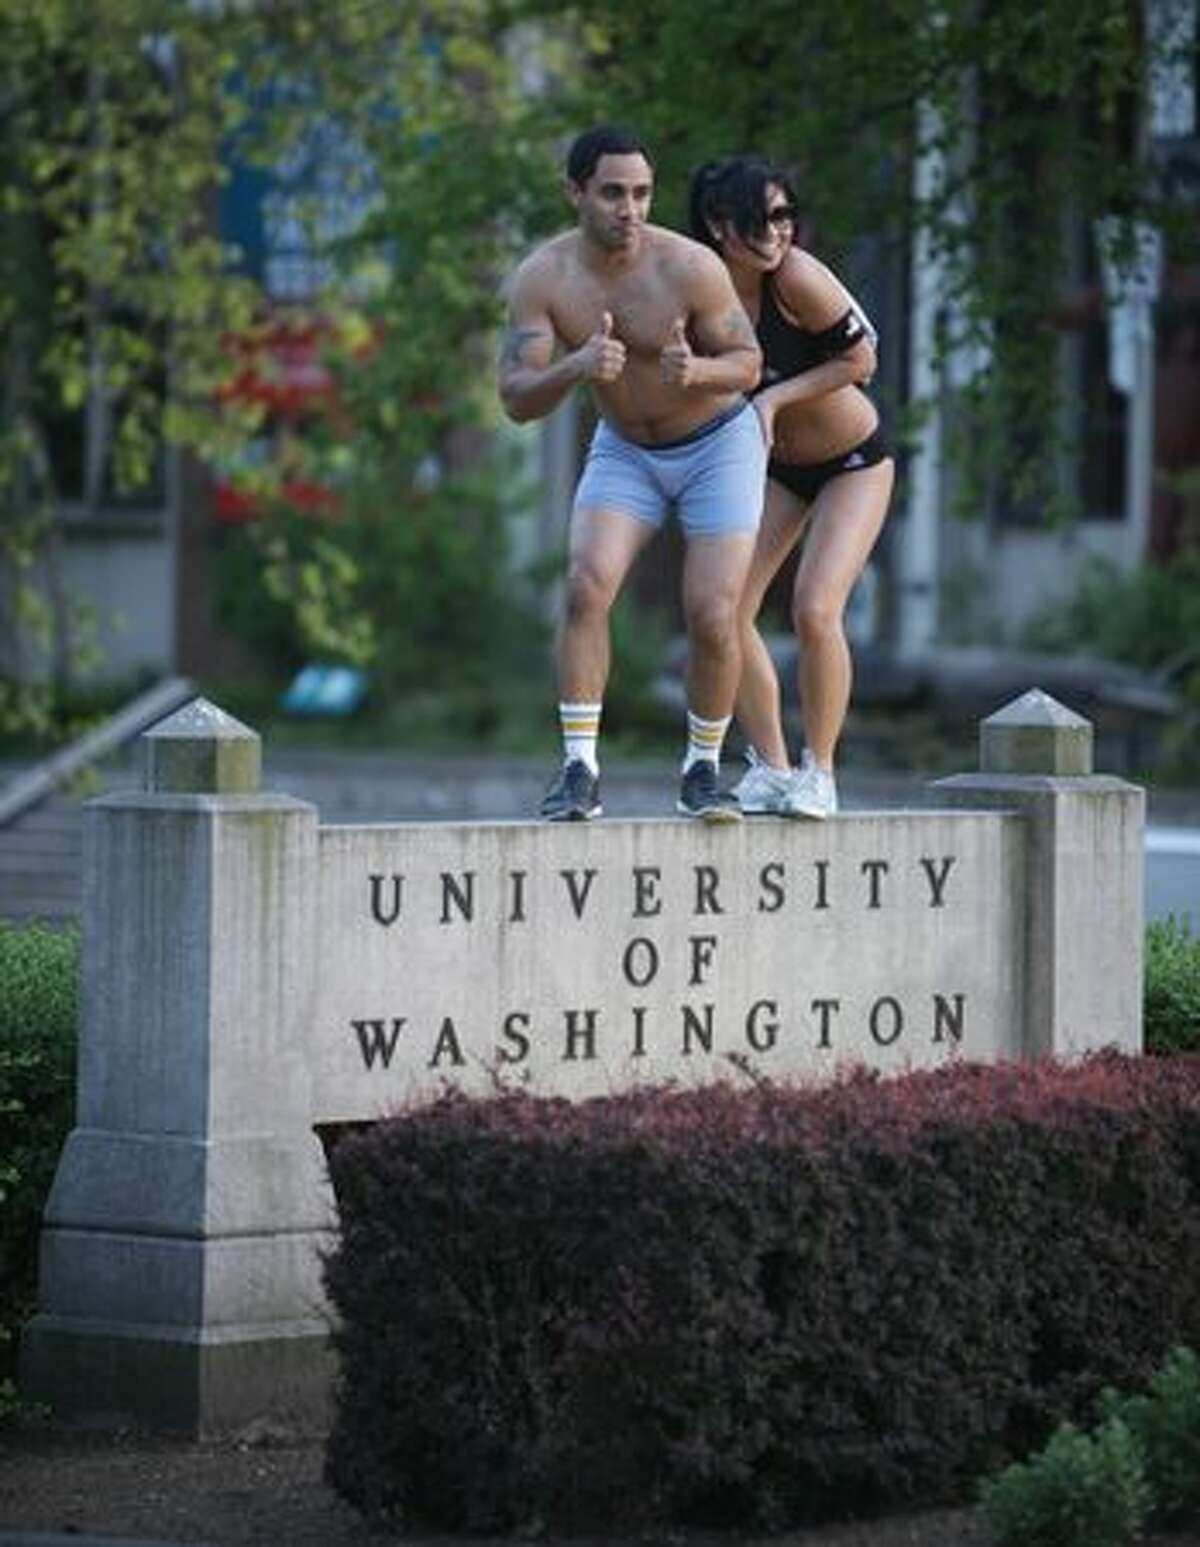 A pair of University of Washington students strike a pose at the entrance to campus during the